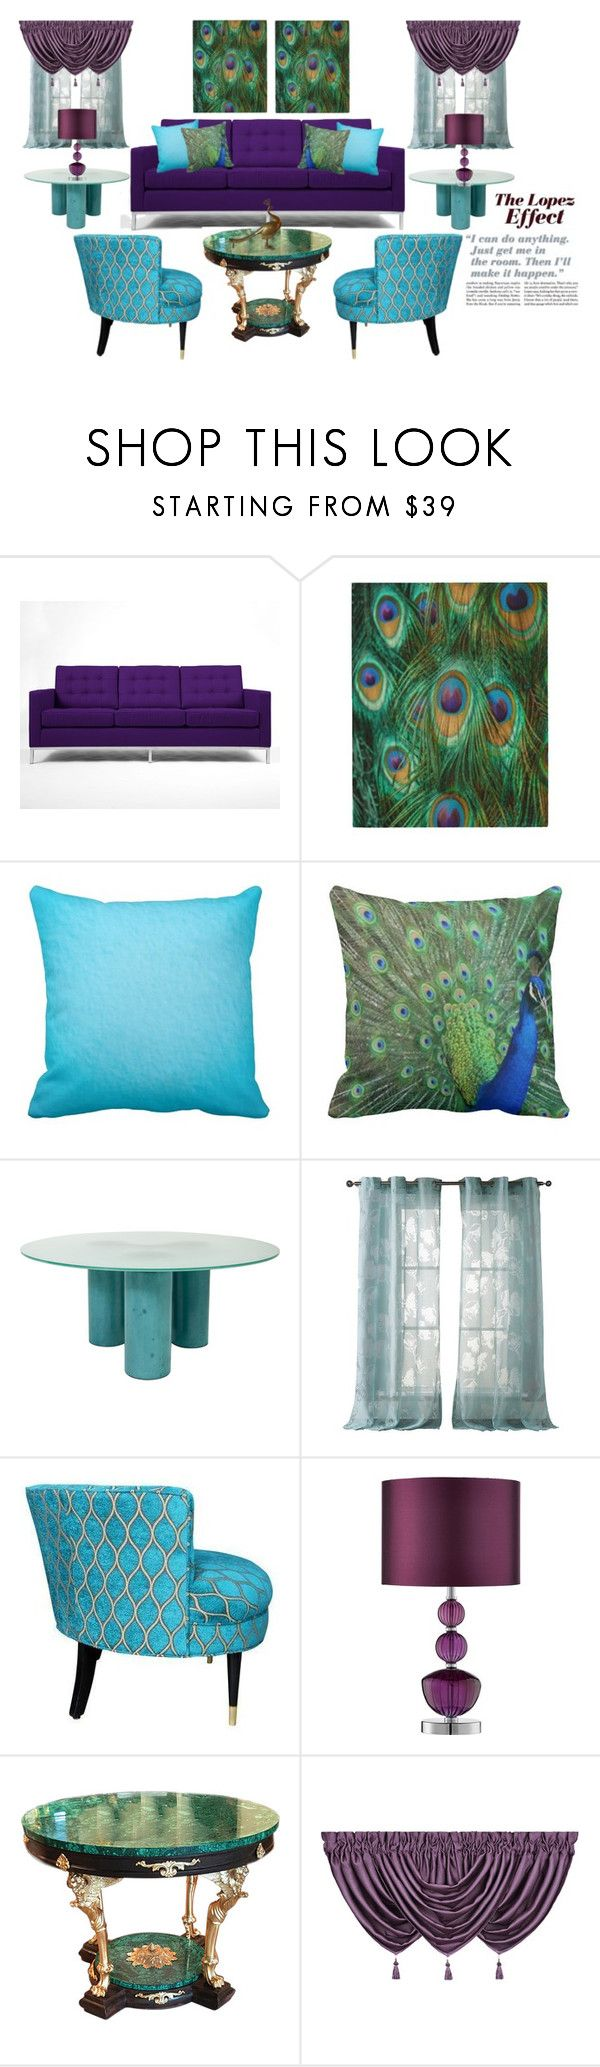 Peacock Living Room 17 Best Ideas About Peacock Living Room On Pinterest Peacock